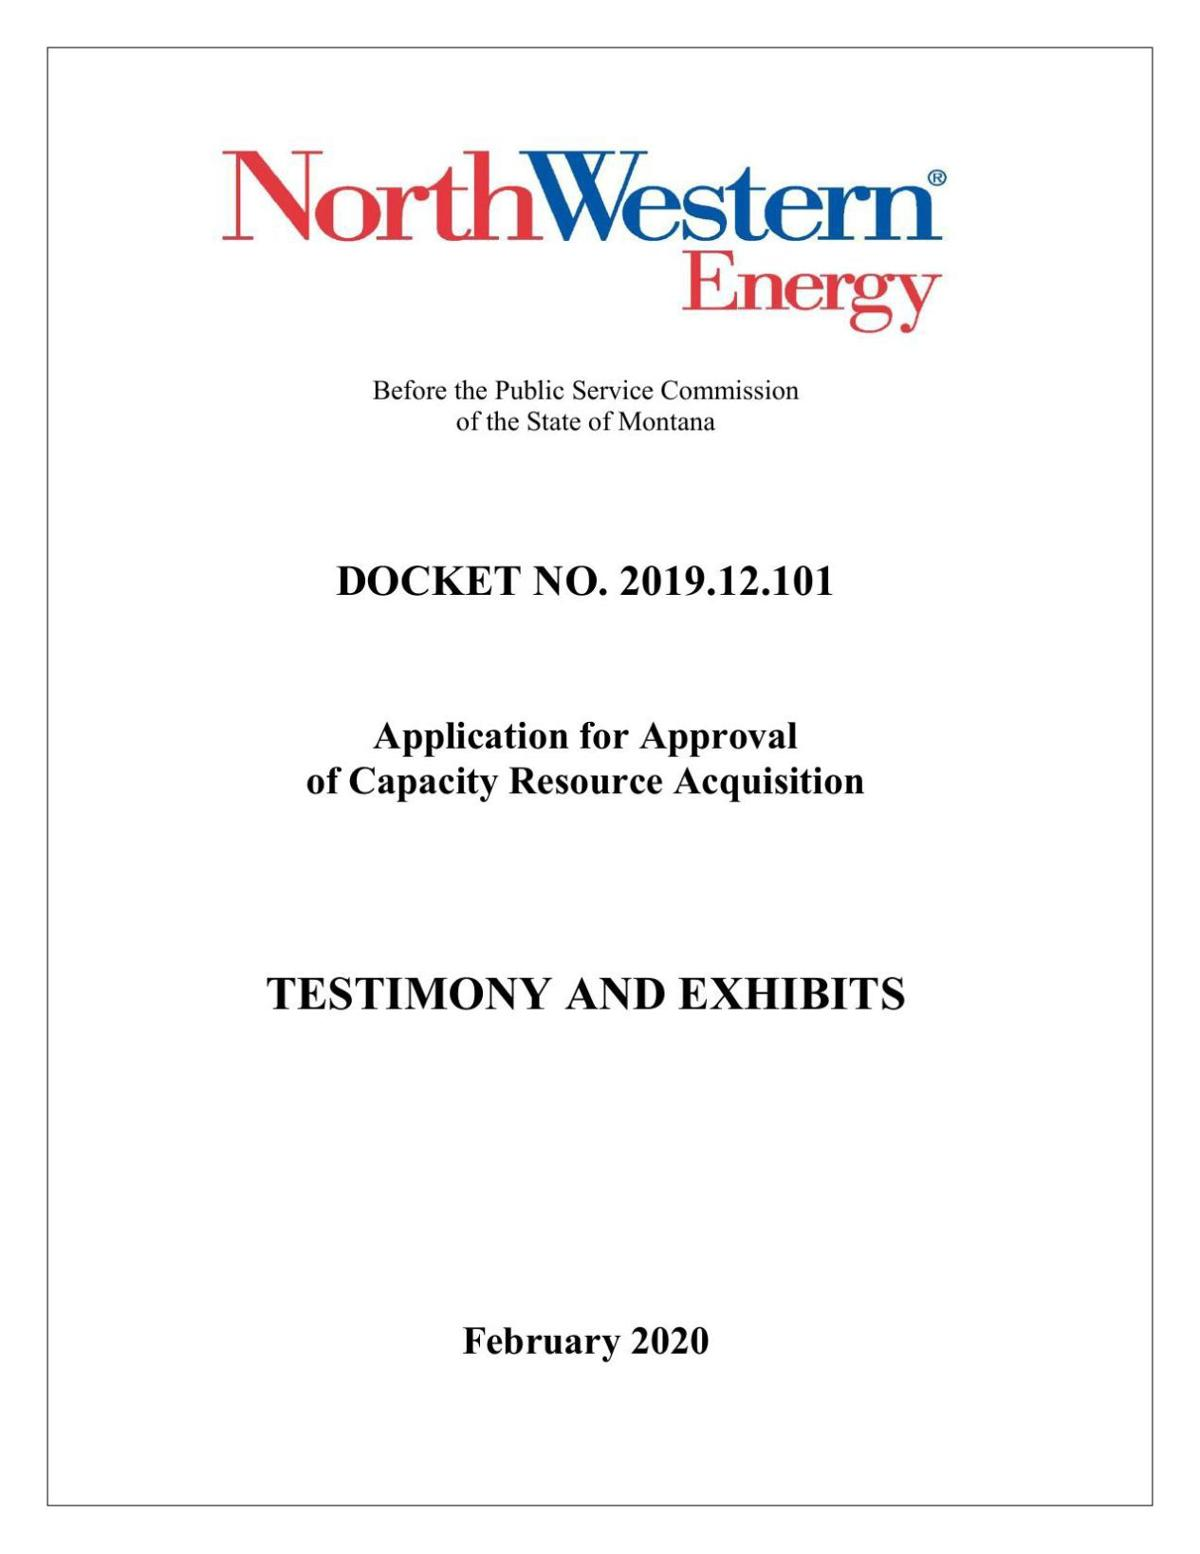 e-filed NorthWestern Energy's Testimony and Exhibits: Application for Approval of Capacity Resource Acquisition